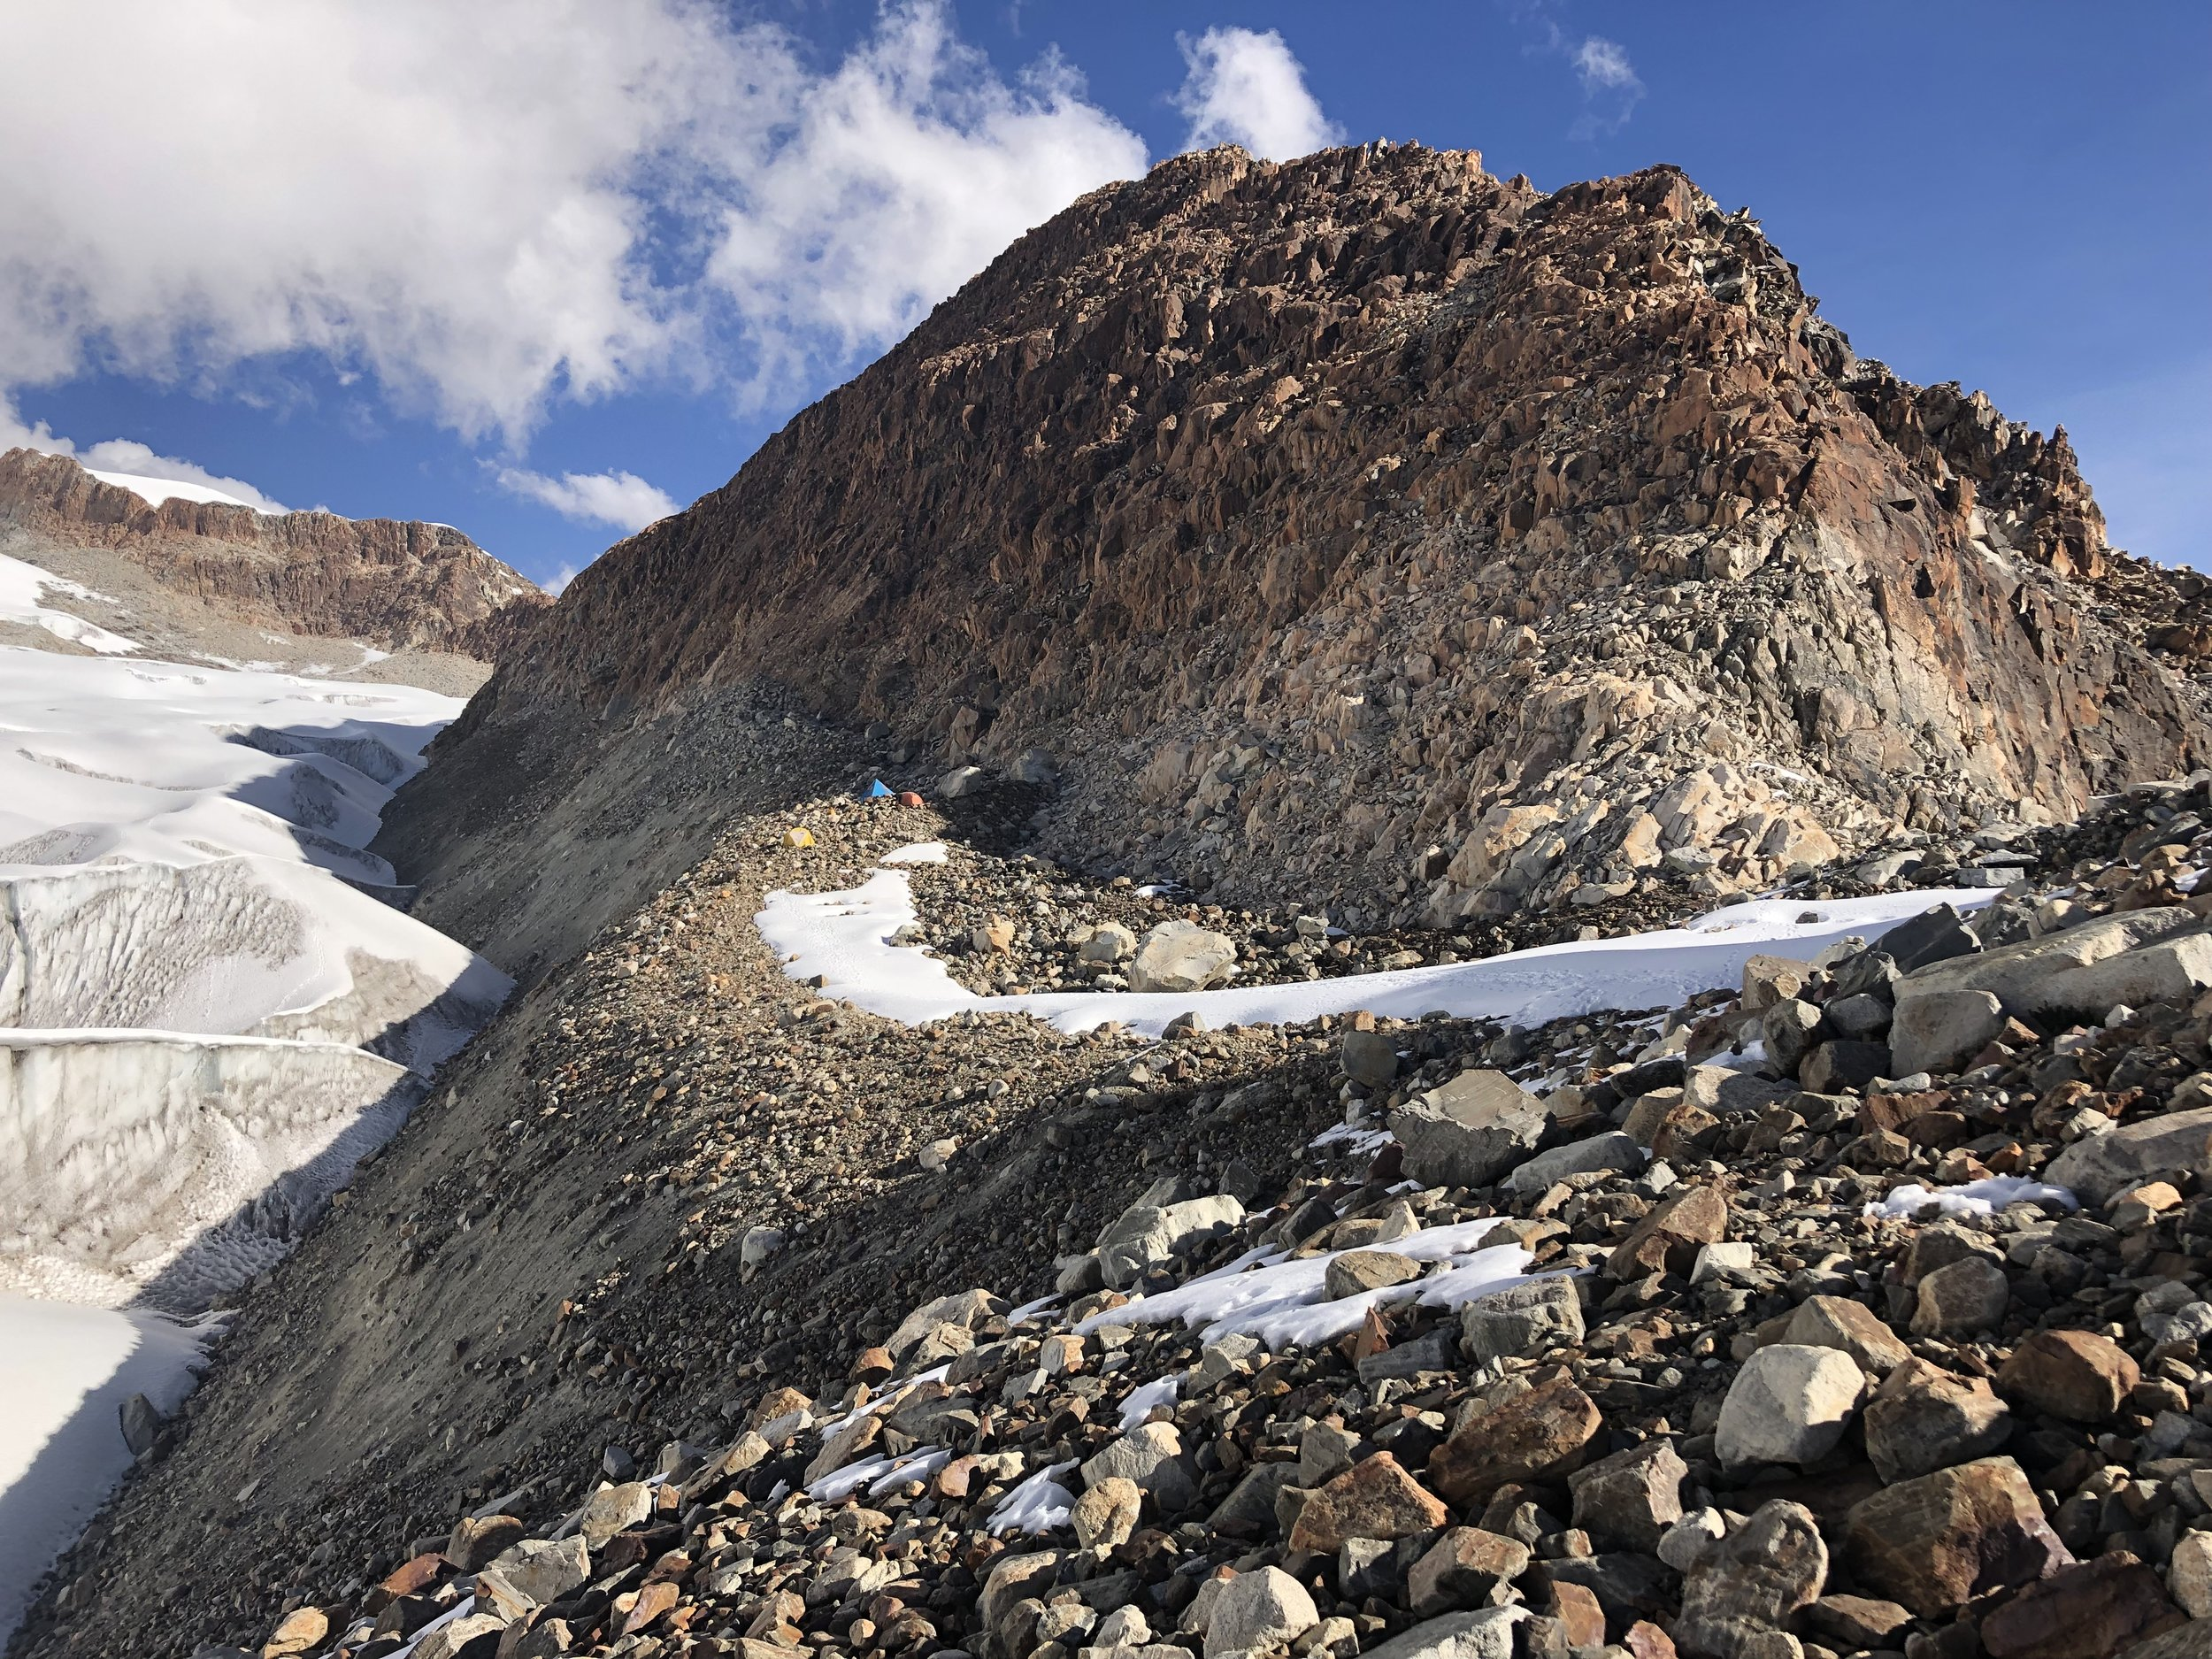 The high camp is on the edge of the high moraine. It is a fantastic spot with great views. There are a few flat platforms for tents.